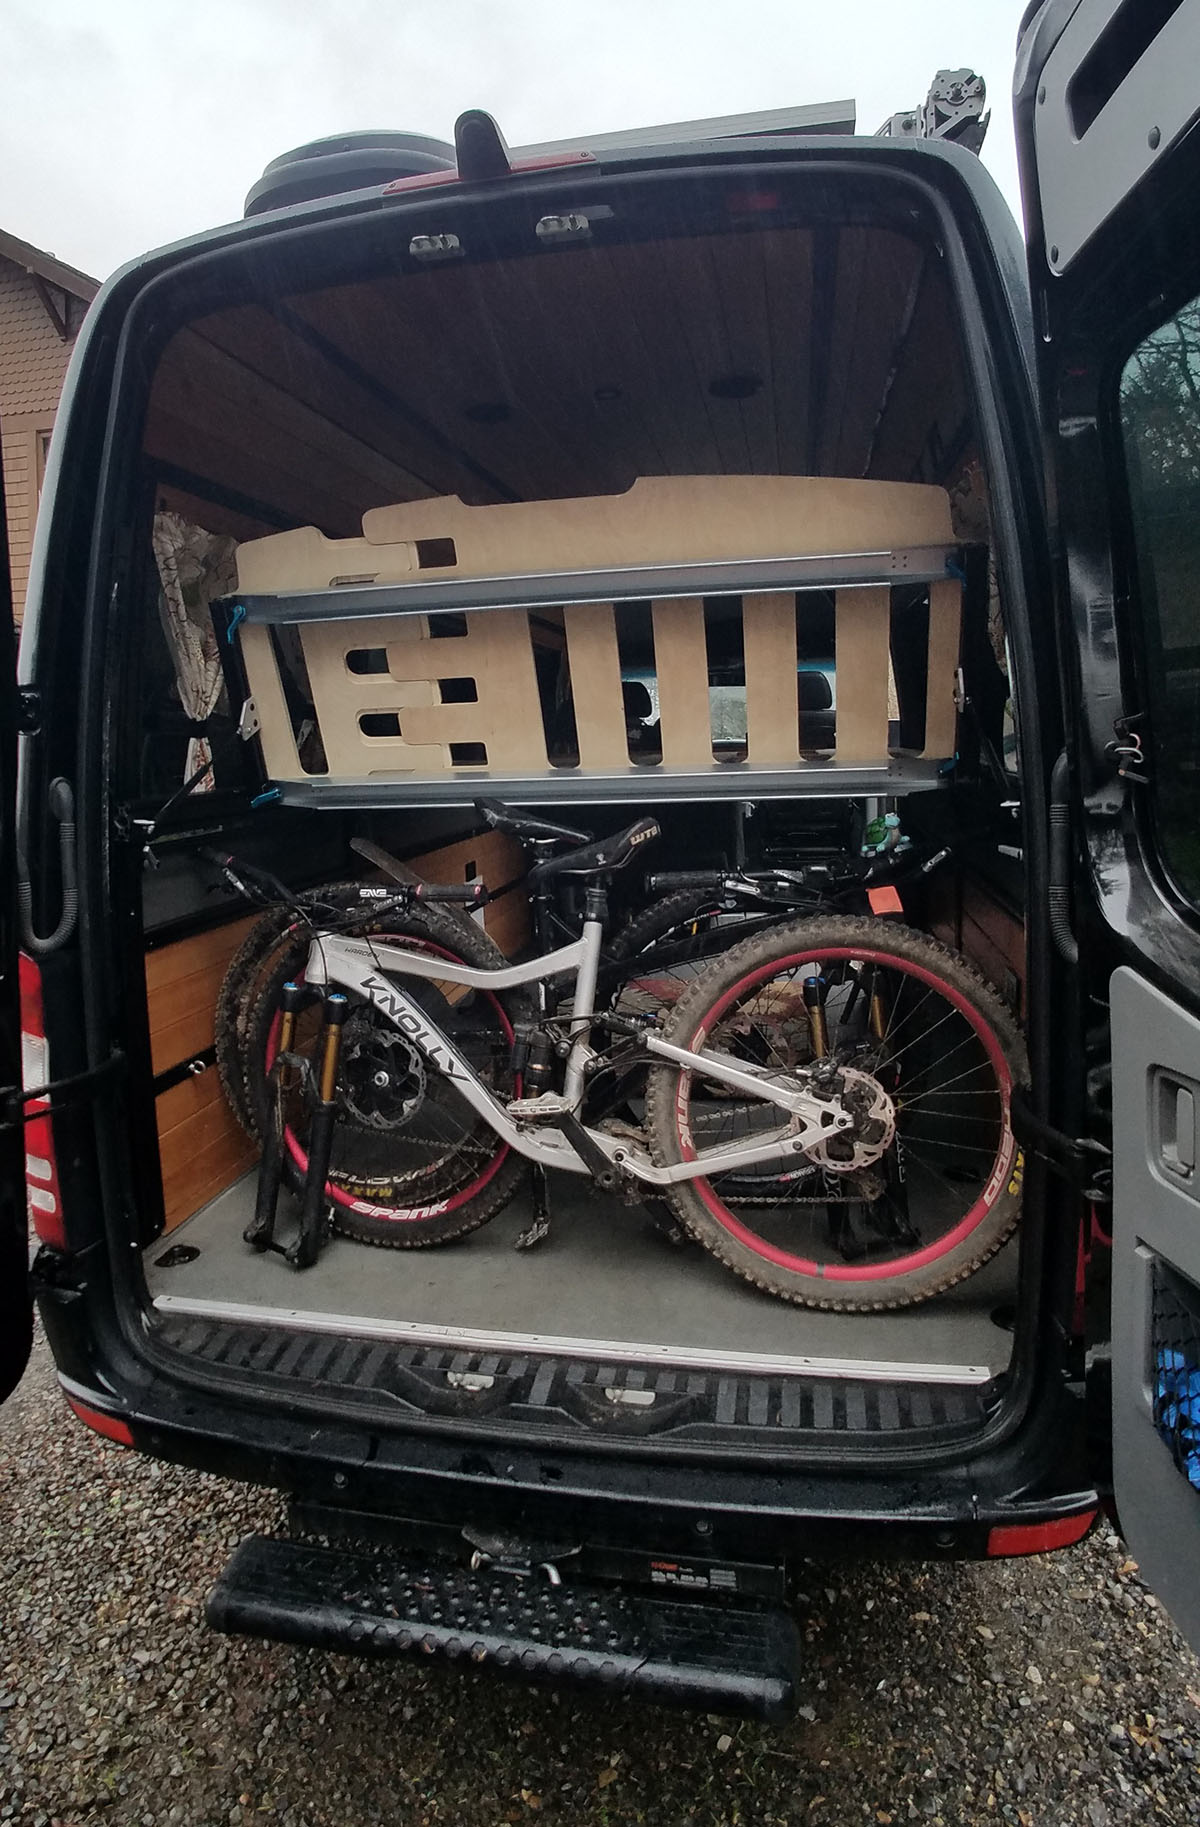 Sprinter Van With Bikes Shown Adjustable Bed Tilted Up For Access